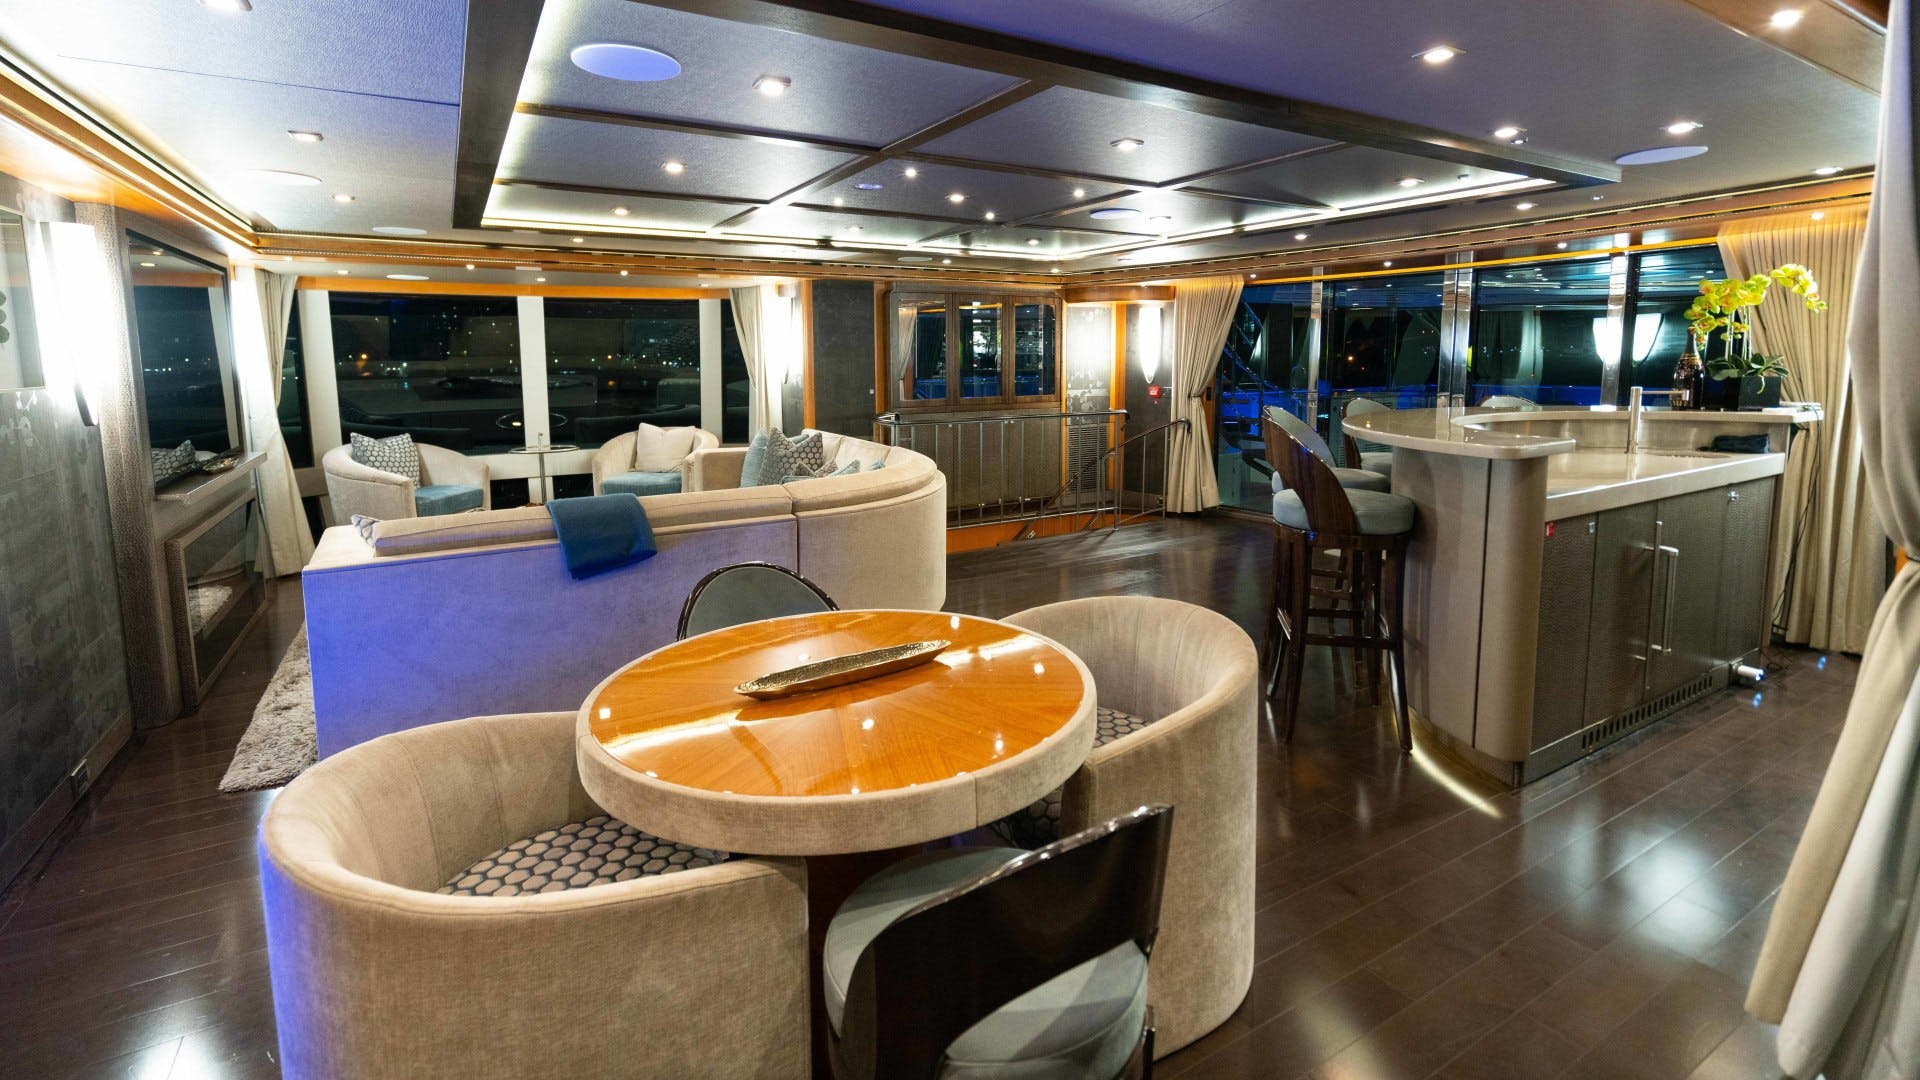 2016 IAG 133' Motor Yacht SERENITY   Picture 3 of 120